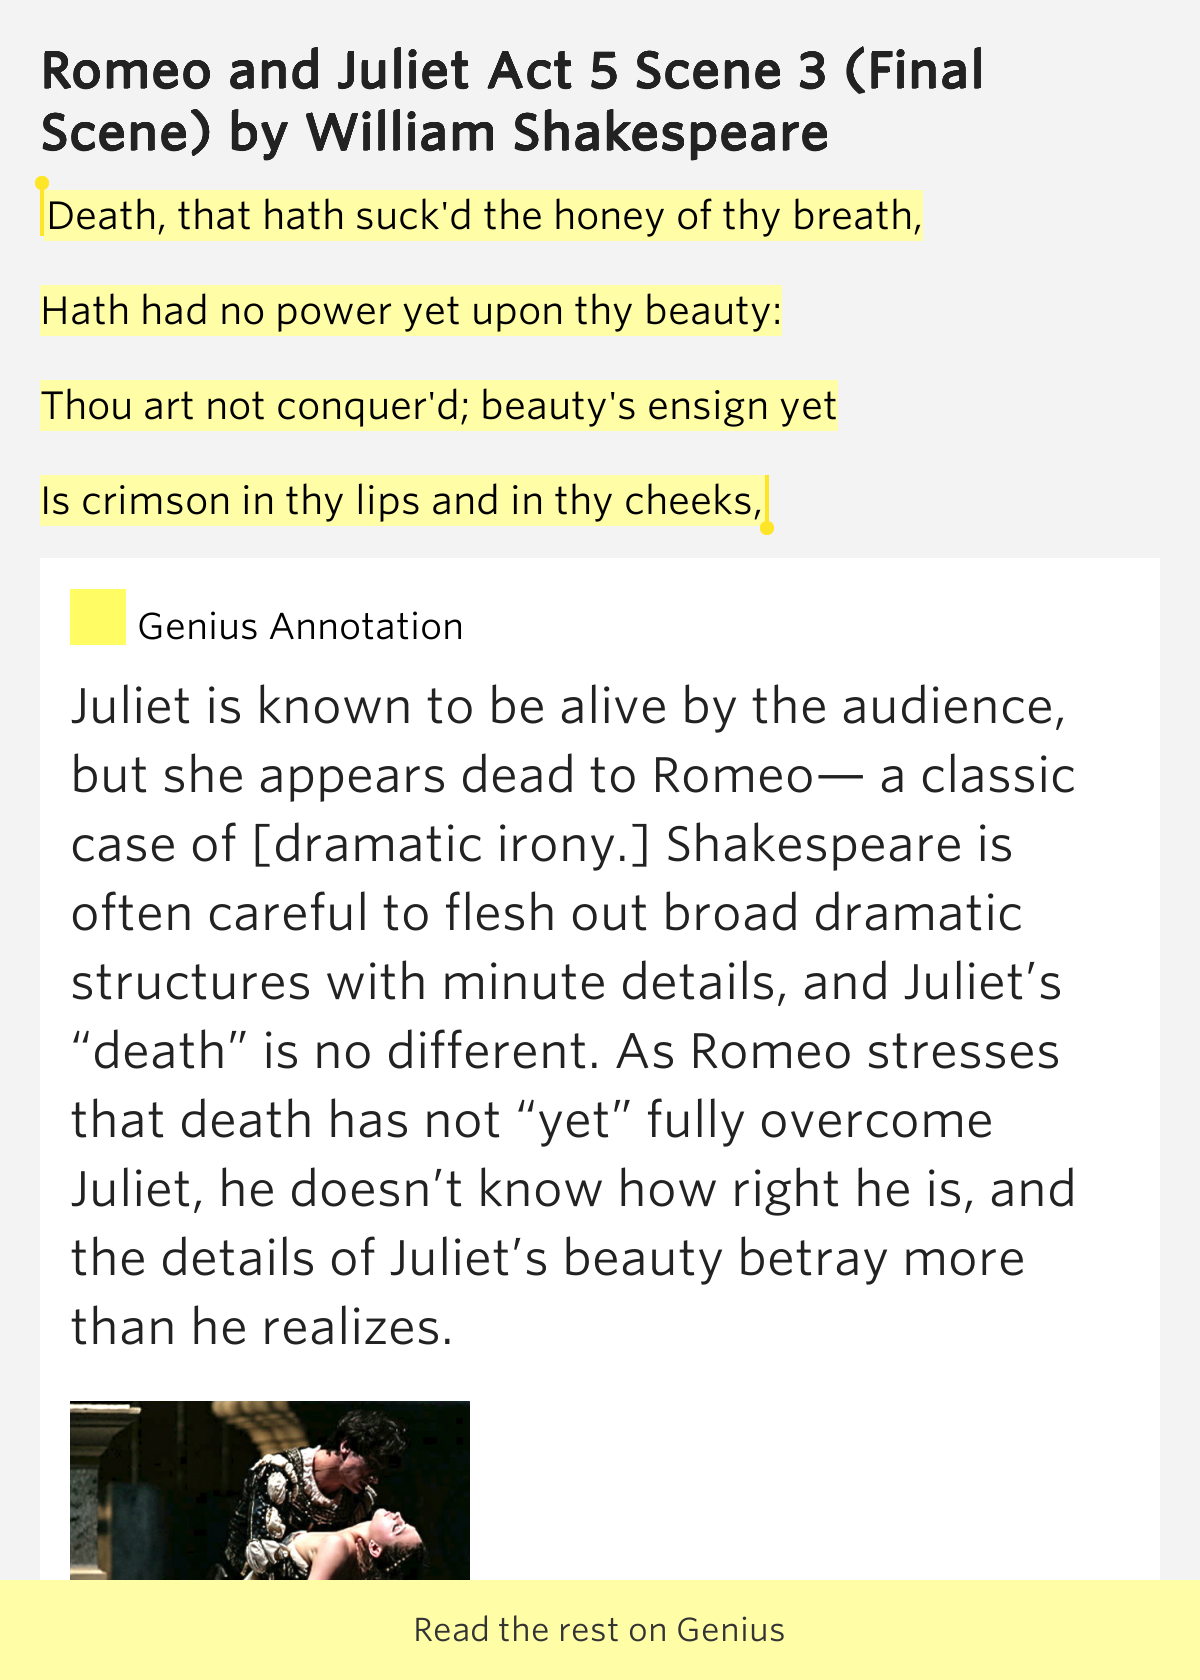 an analysis of the final scene in hamlet by william shakespeare The tragical history of hamlet, prince of denmark, or, as it's more simply known, hamlet, is a play that holds immense importance in english literature this drama was written by william shakespeare between 1599 and 1601 the plot is set in the country of denmark, and the main protagonist is prince.